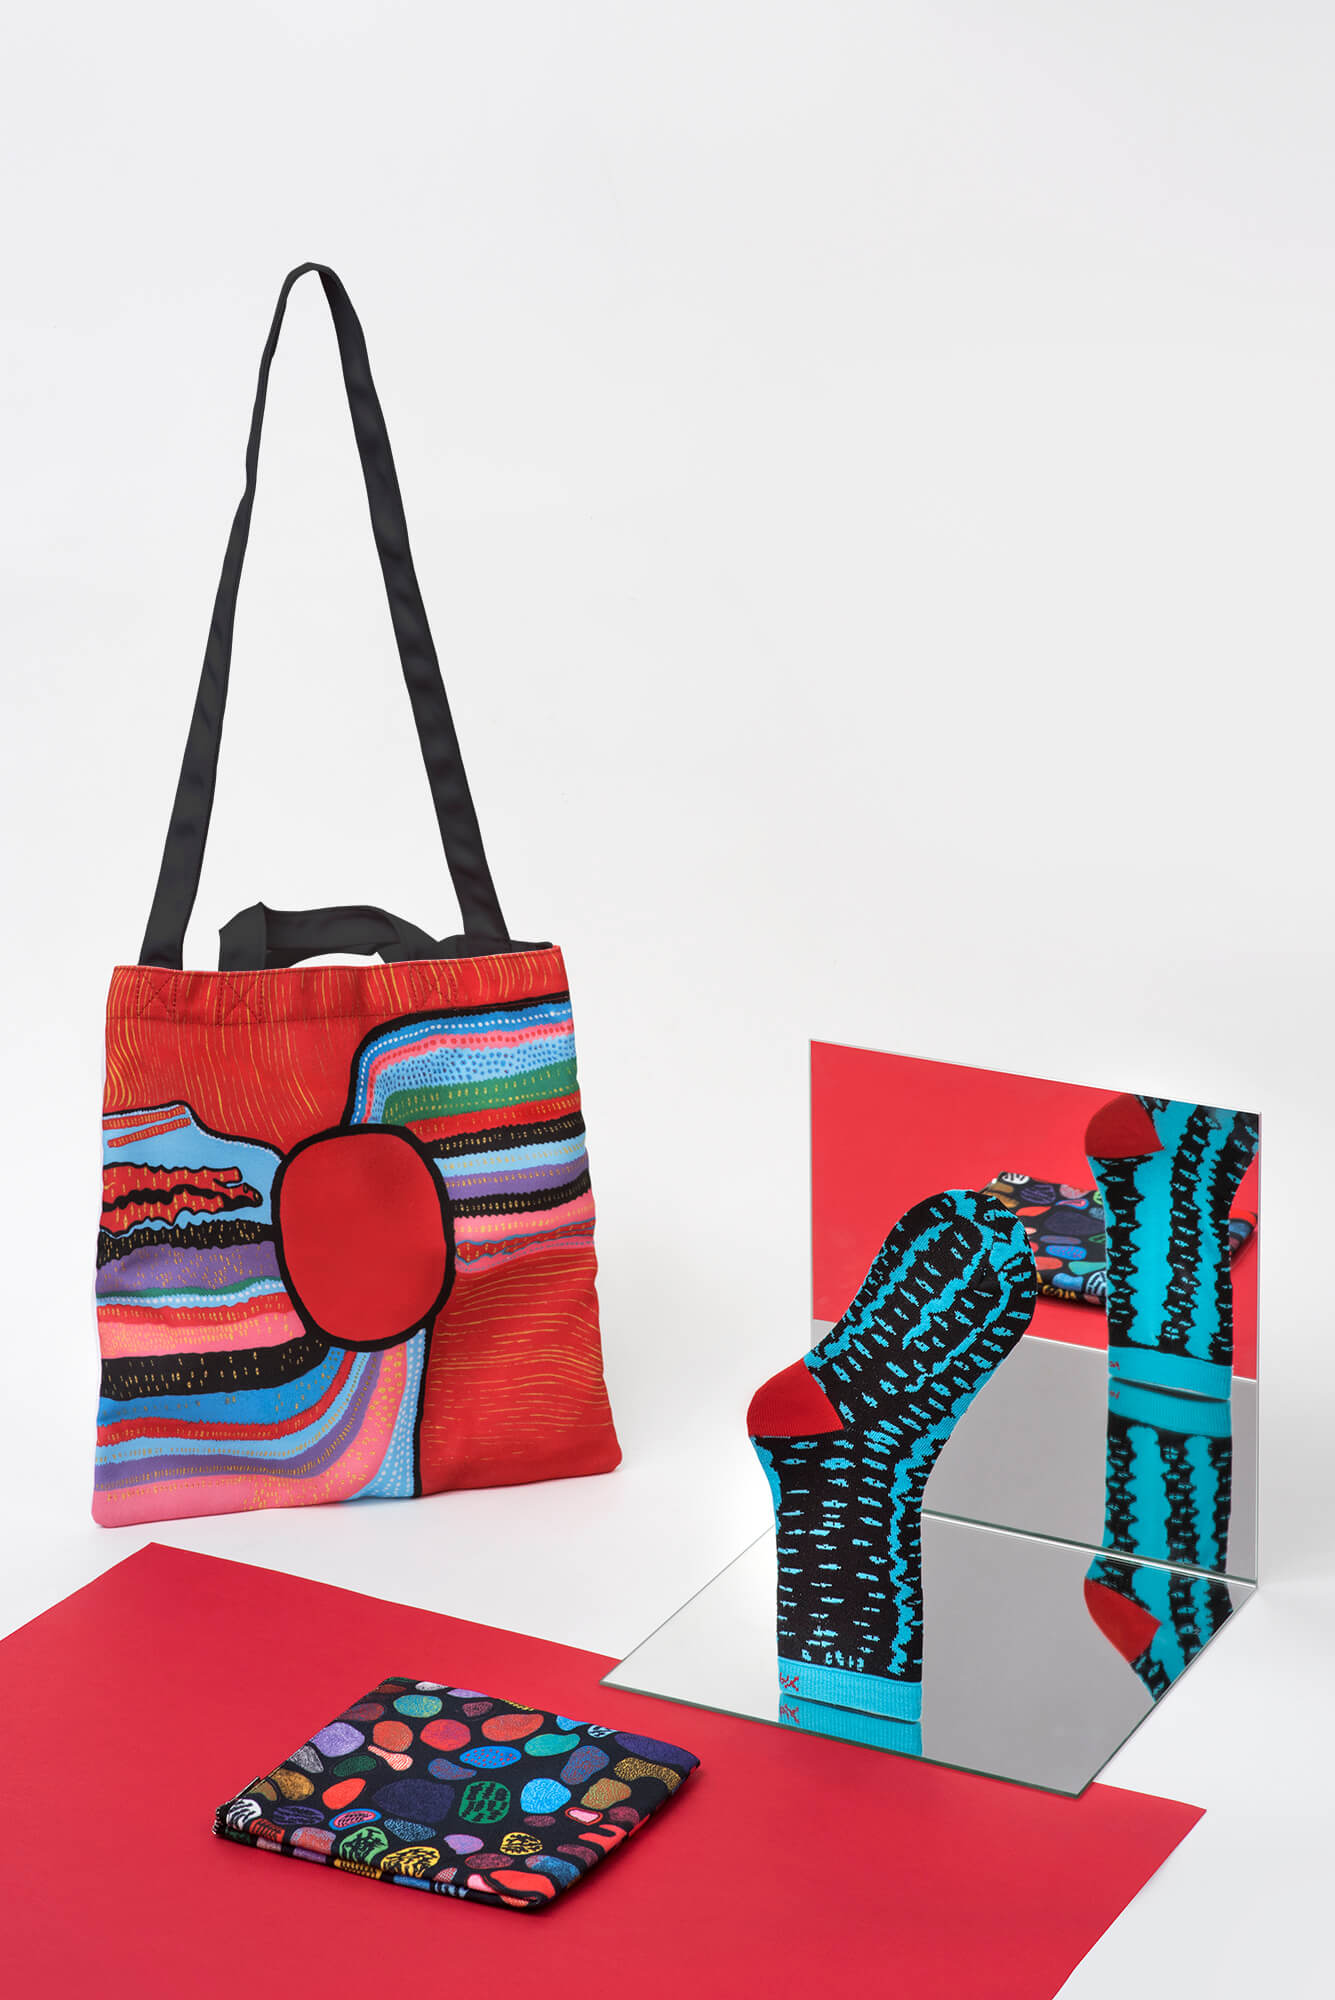 Gallery_Yayoi-Product_Images-3-Tote-Pouch-Socks-1